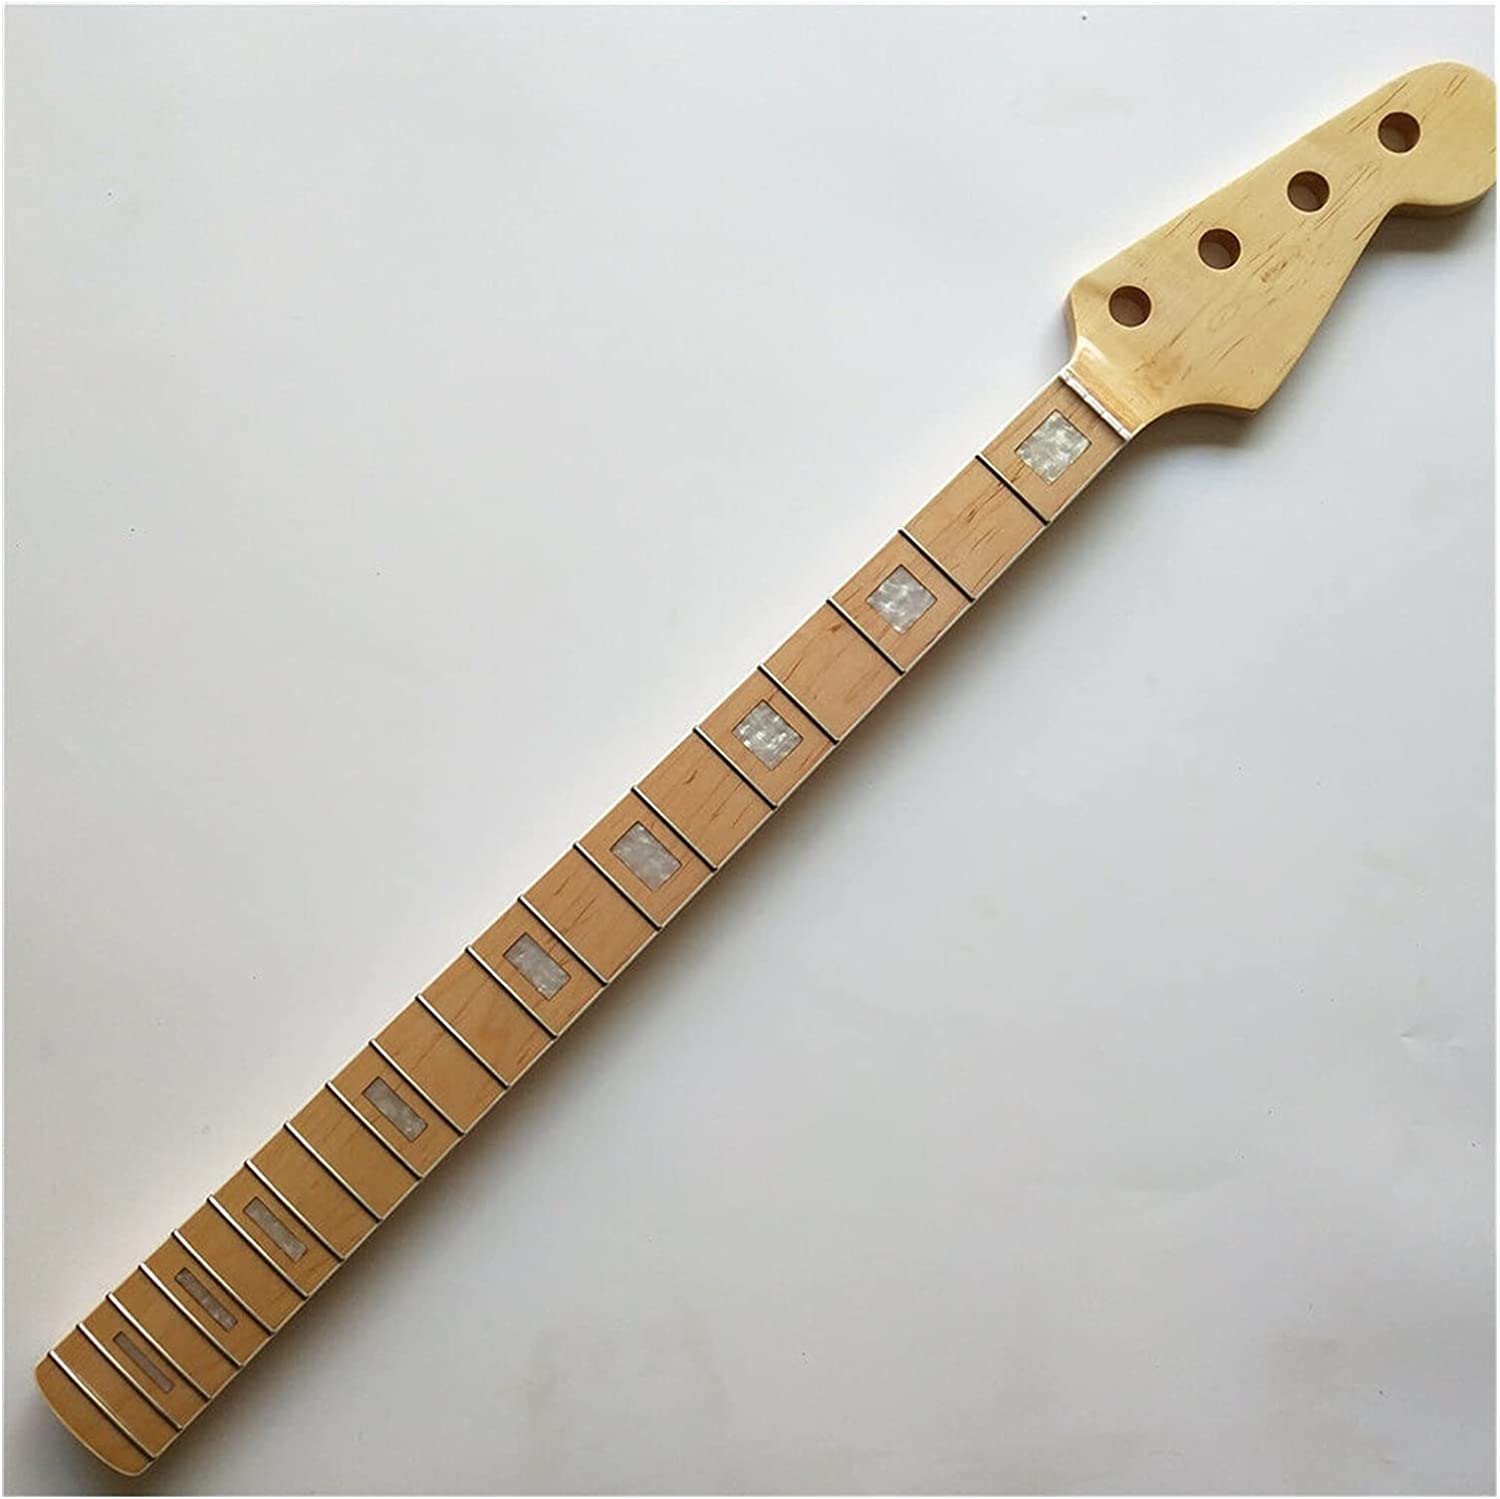 Wuyuana Guitar Neck New product type Bass Style 20 Max 76% OFF 4 String Maple Frets